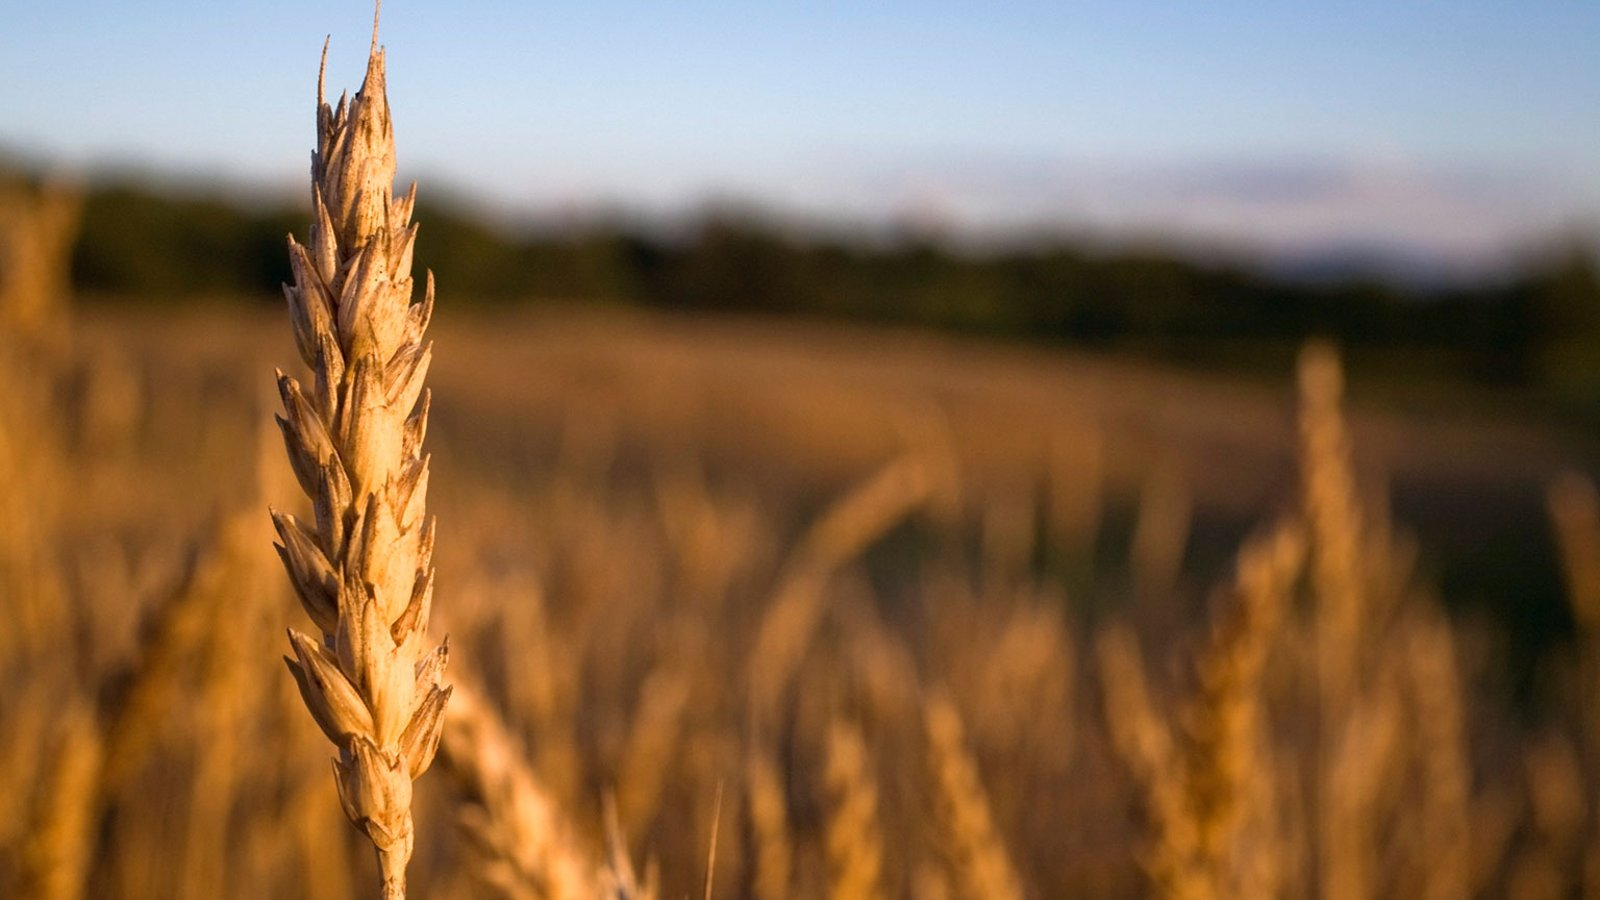 What Early Agriculturalists Ate